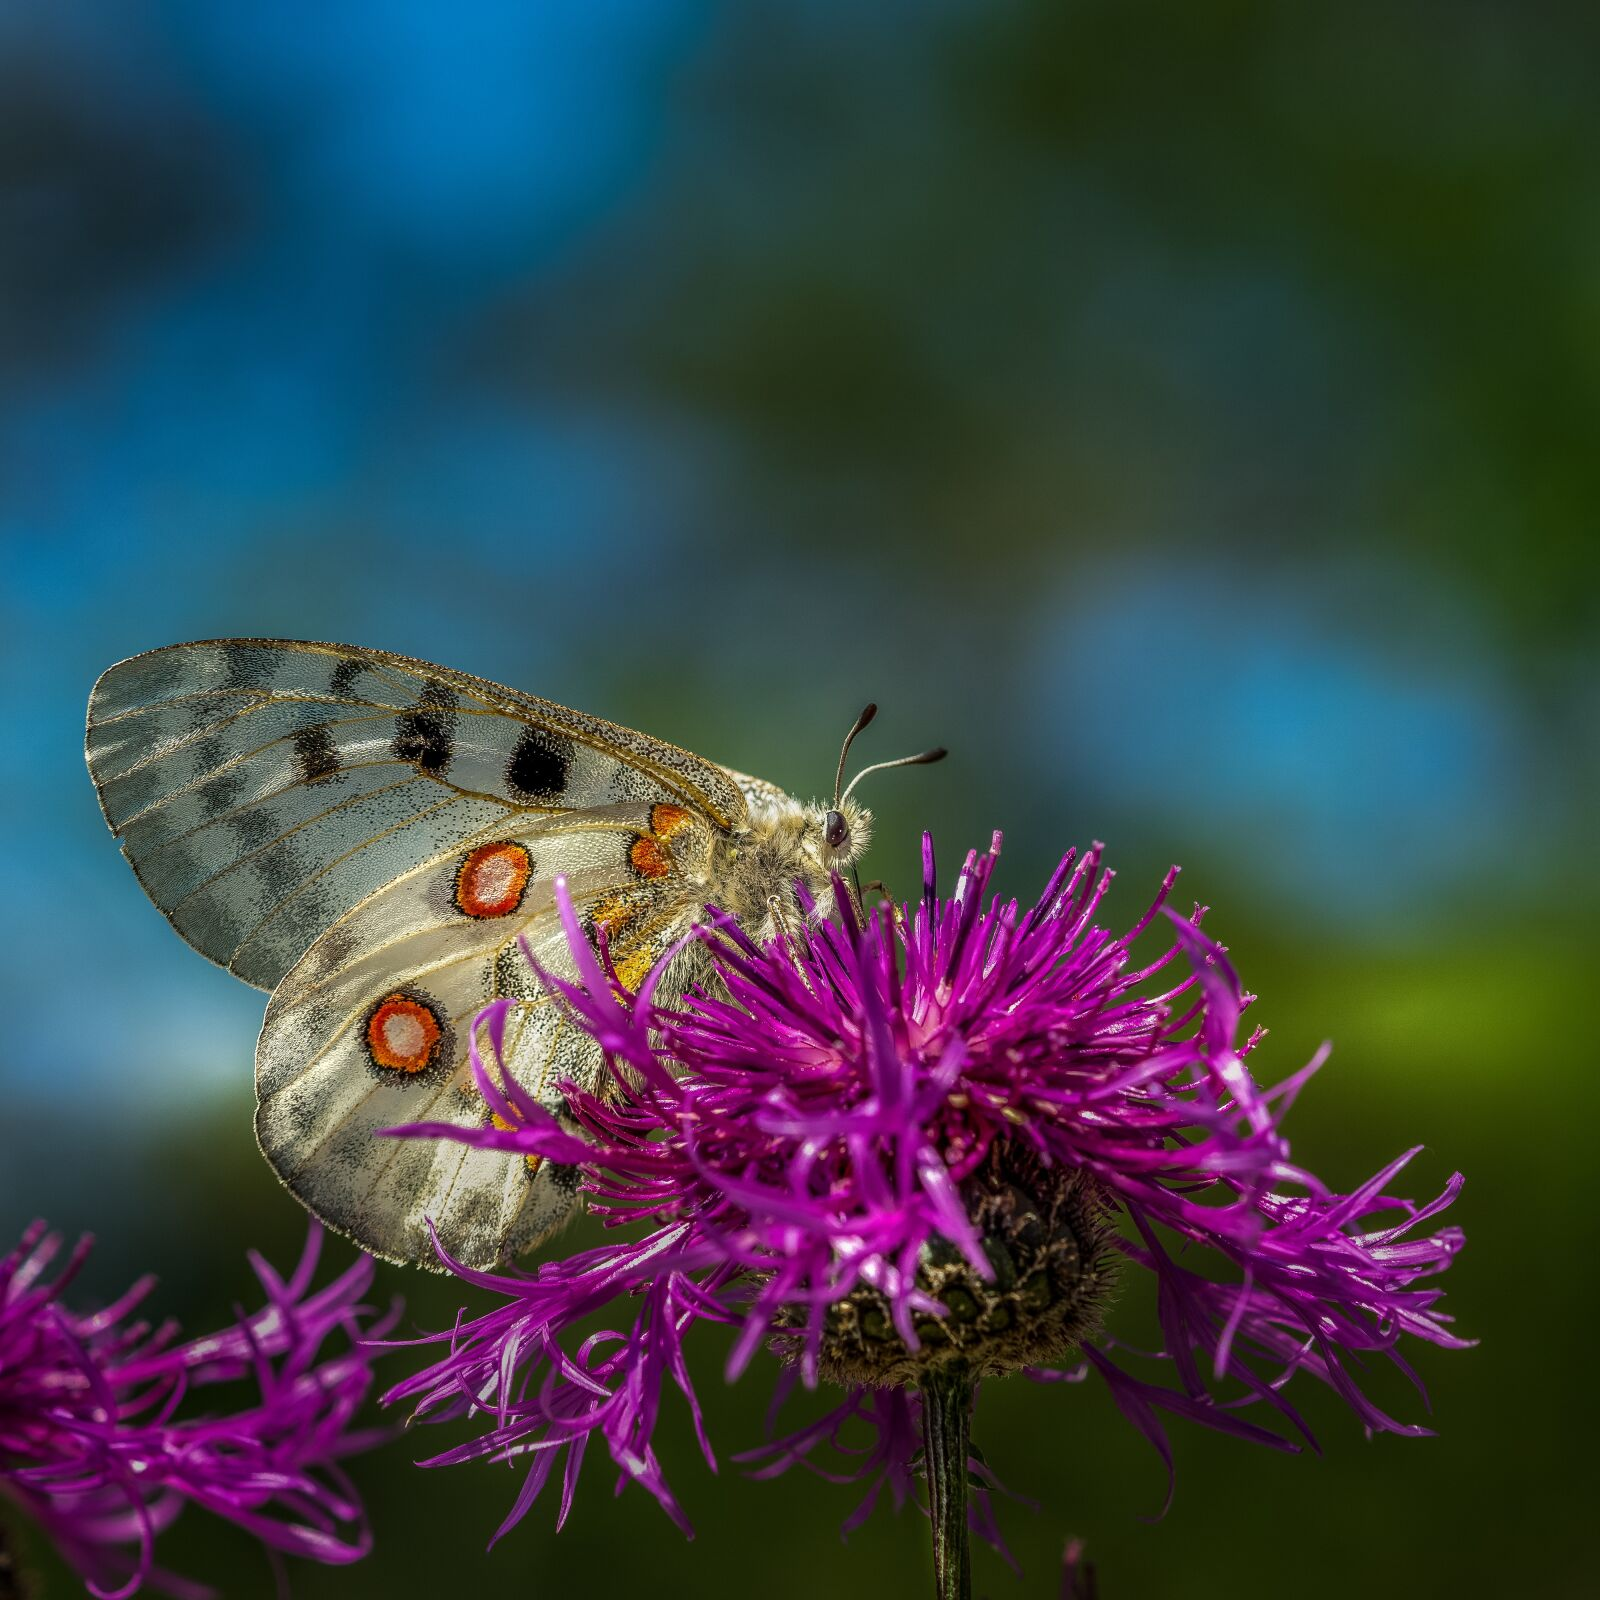 """Sony a6000 sample photo. """"Apollo, butterfly, insect"""" photography"""